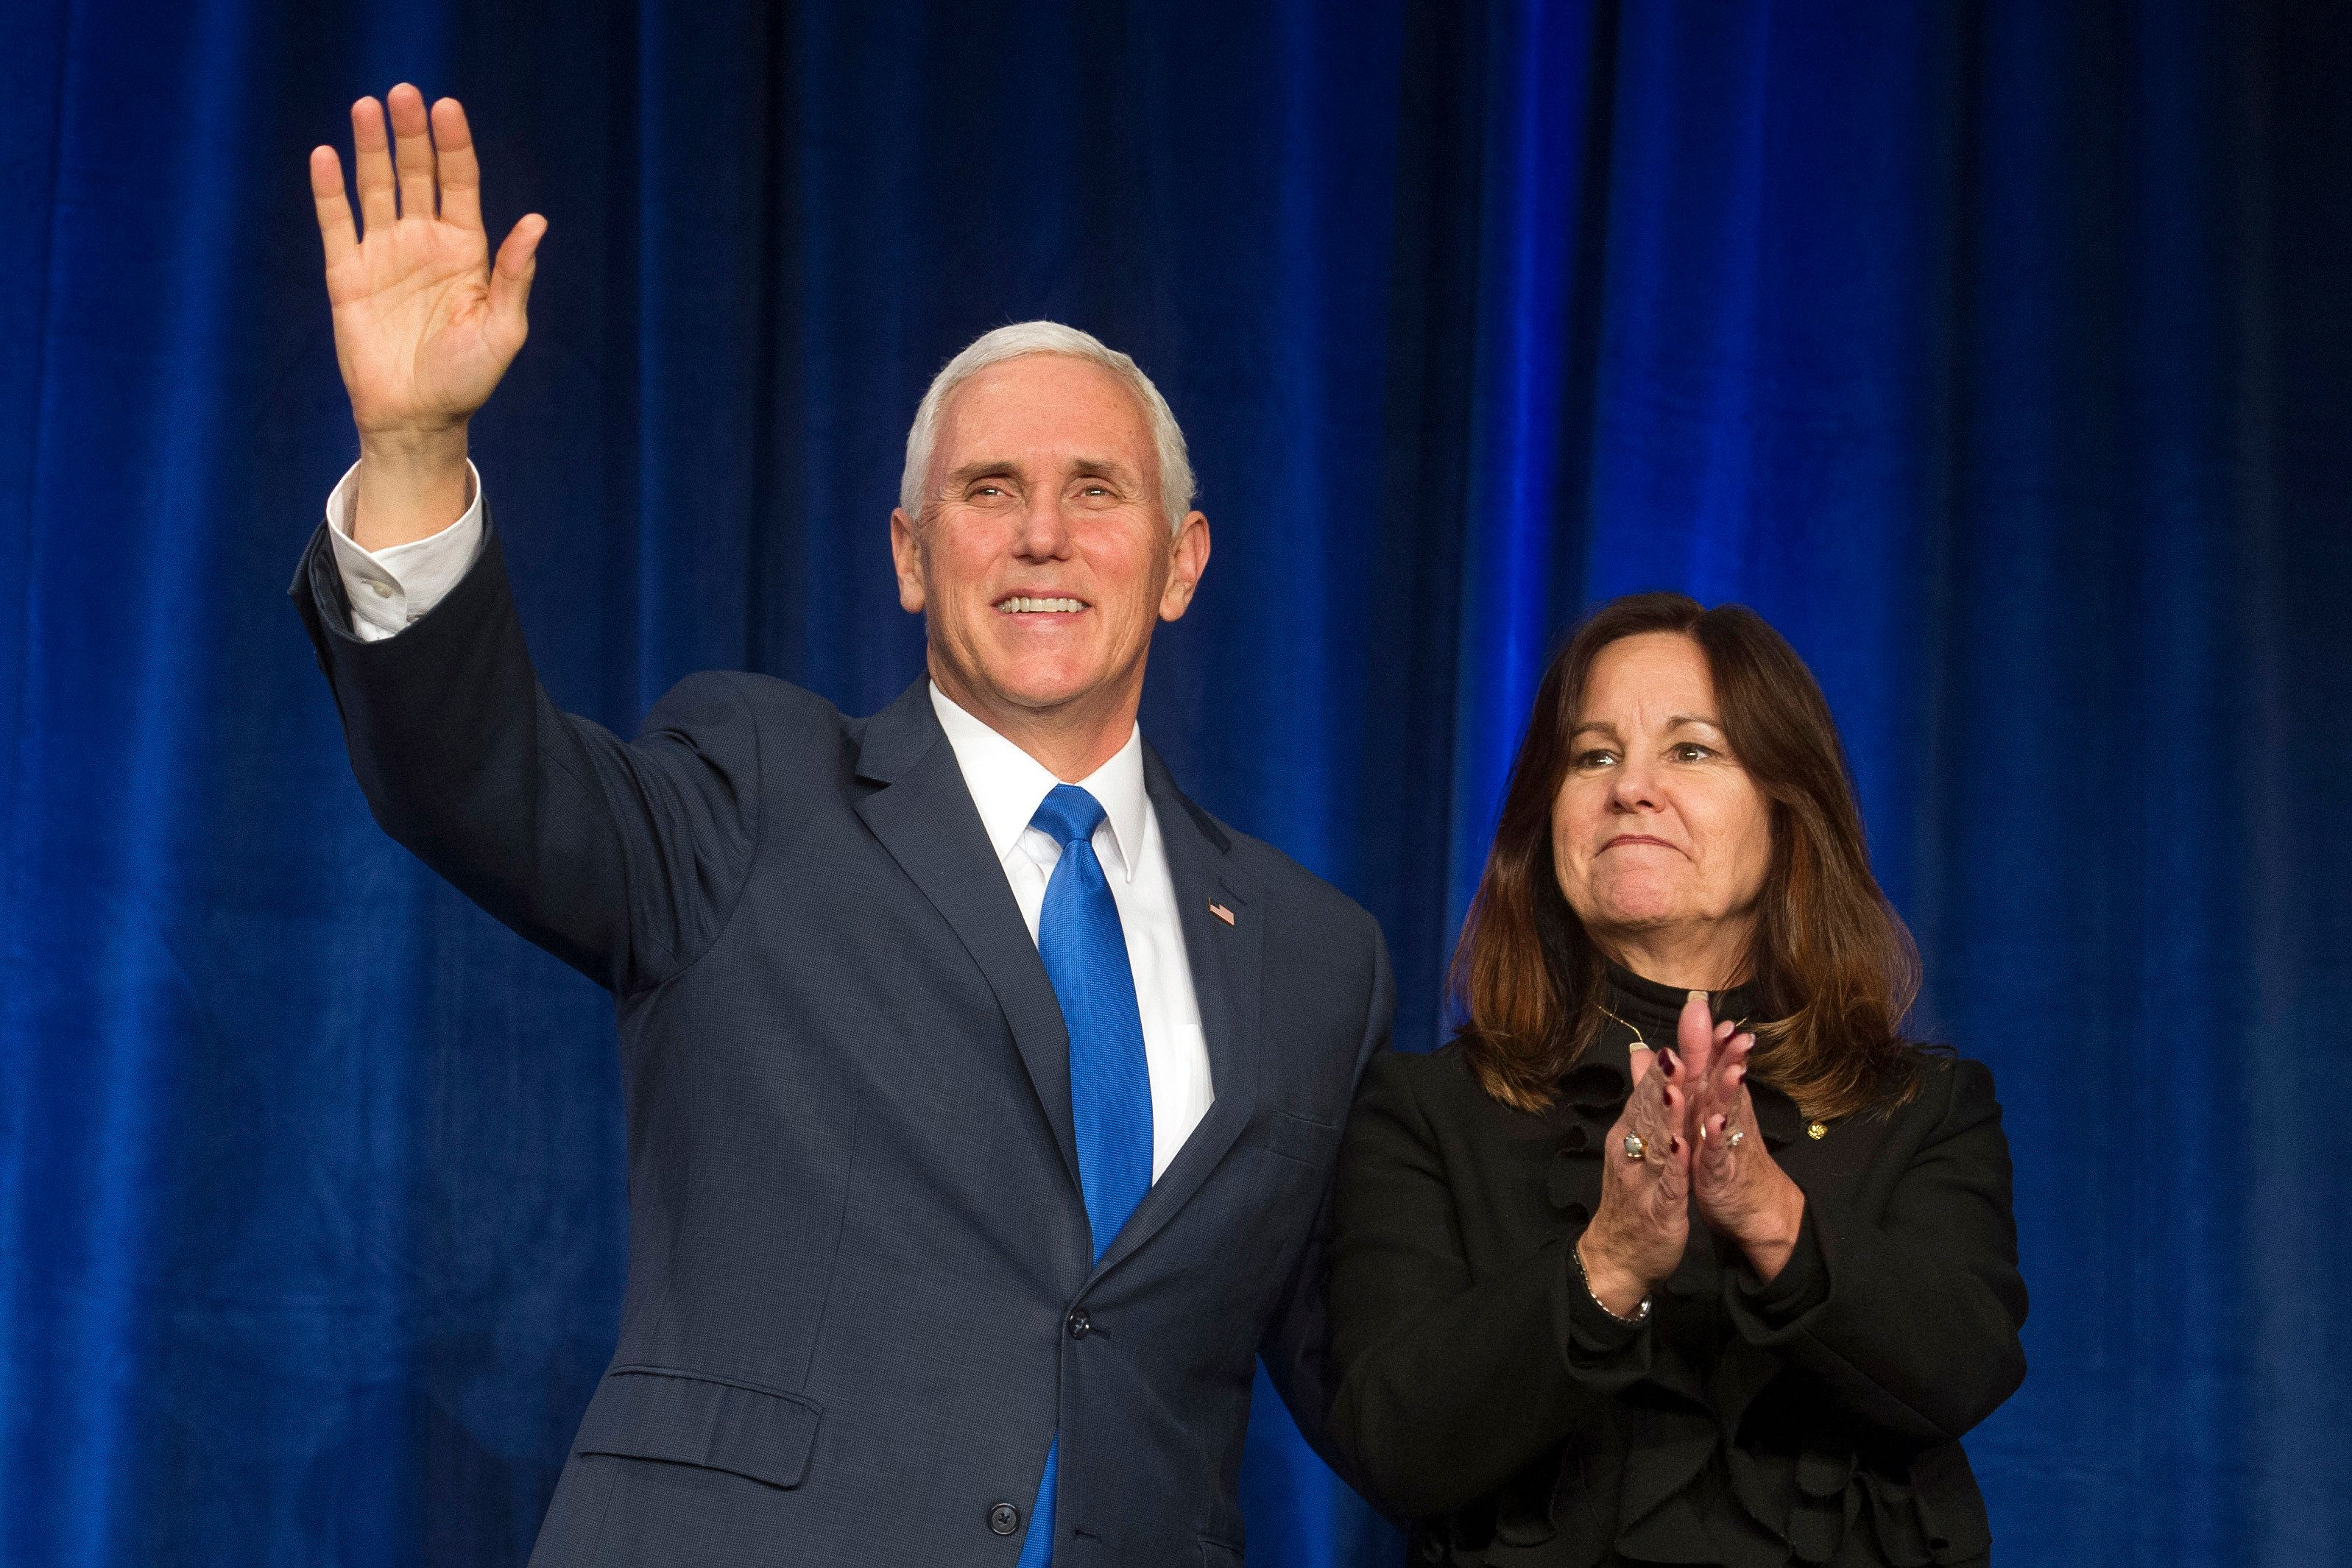 Vice President Mike Pence and his wife, Karen Pence, appeared at events for the anti-abortion March for Life in Washingt